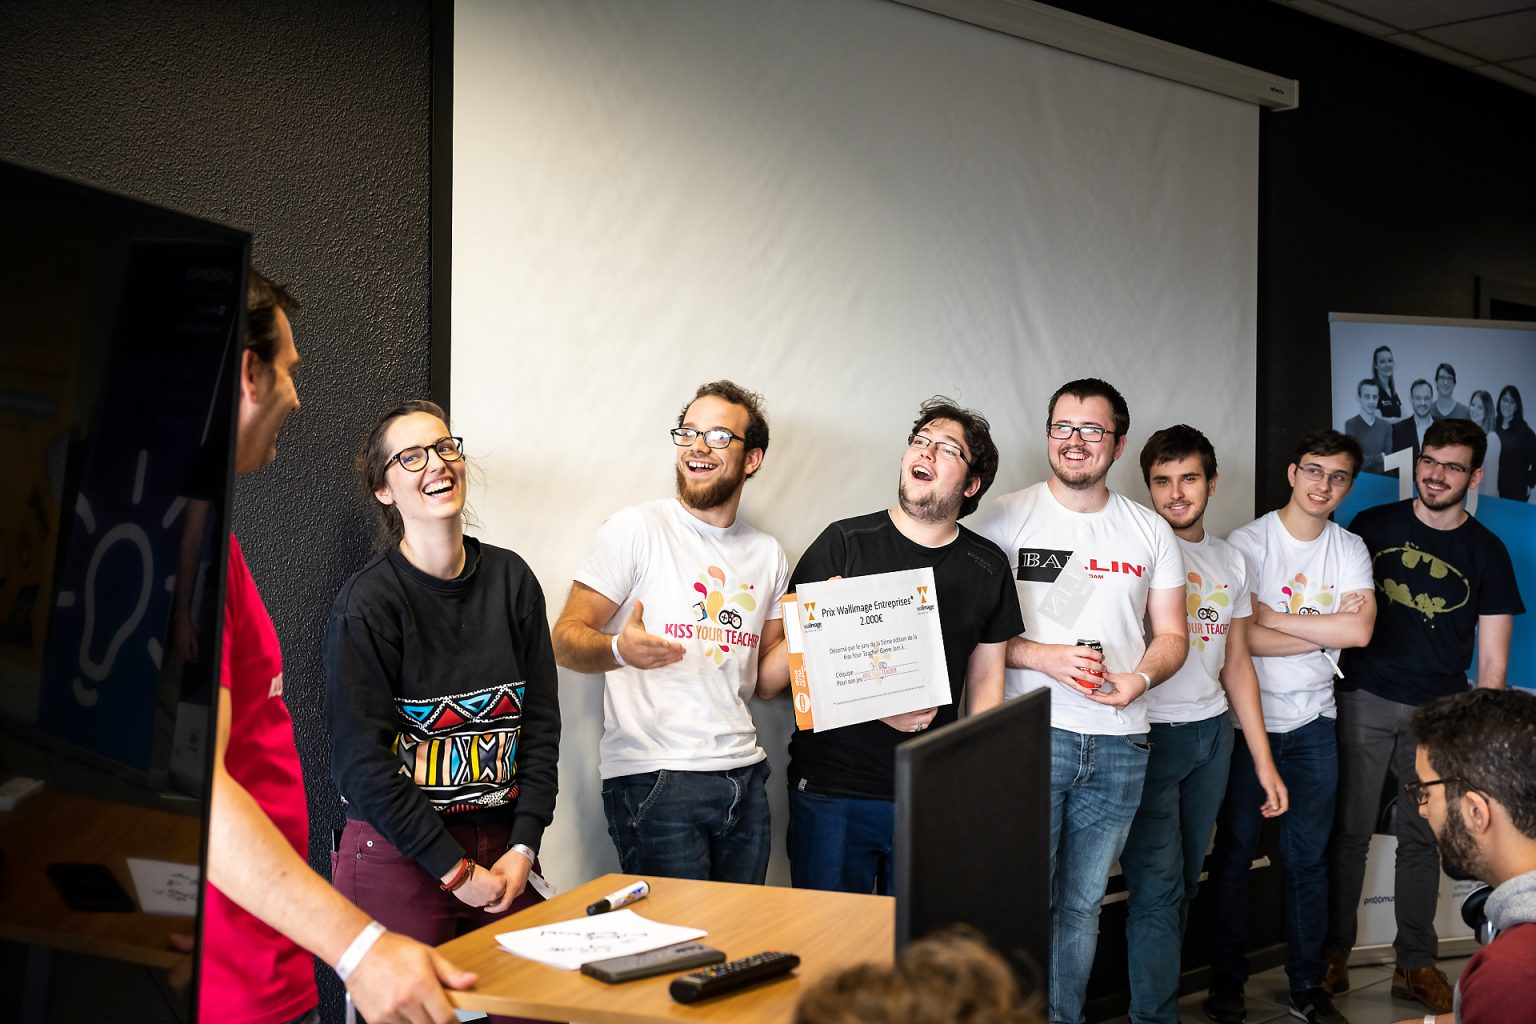 "Remise des prix du KYT5 à l'équipe Duploxels pour son jeu ""DoubleKnoxel"" et l'équipe TSD pour son jeu ""Magneto"", Kiss You Teacher Game Jam, reportage par Aurore Delsoir photographe événementiel"